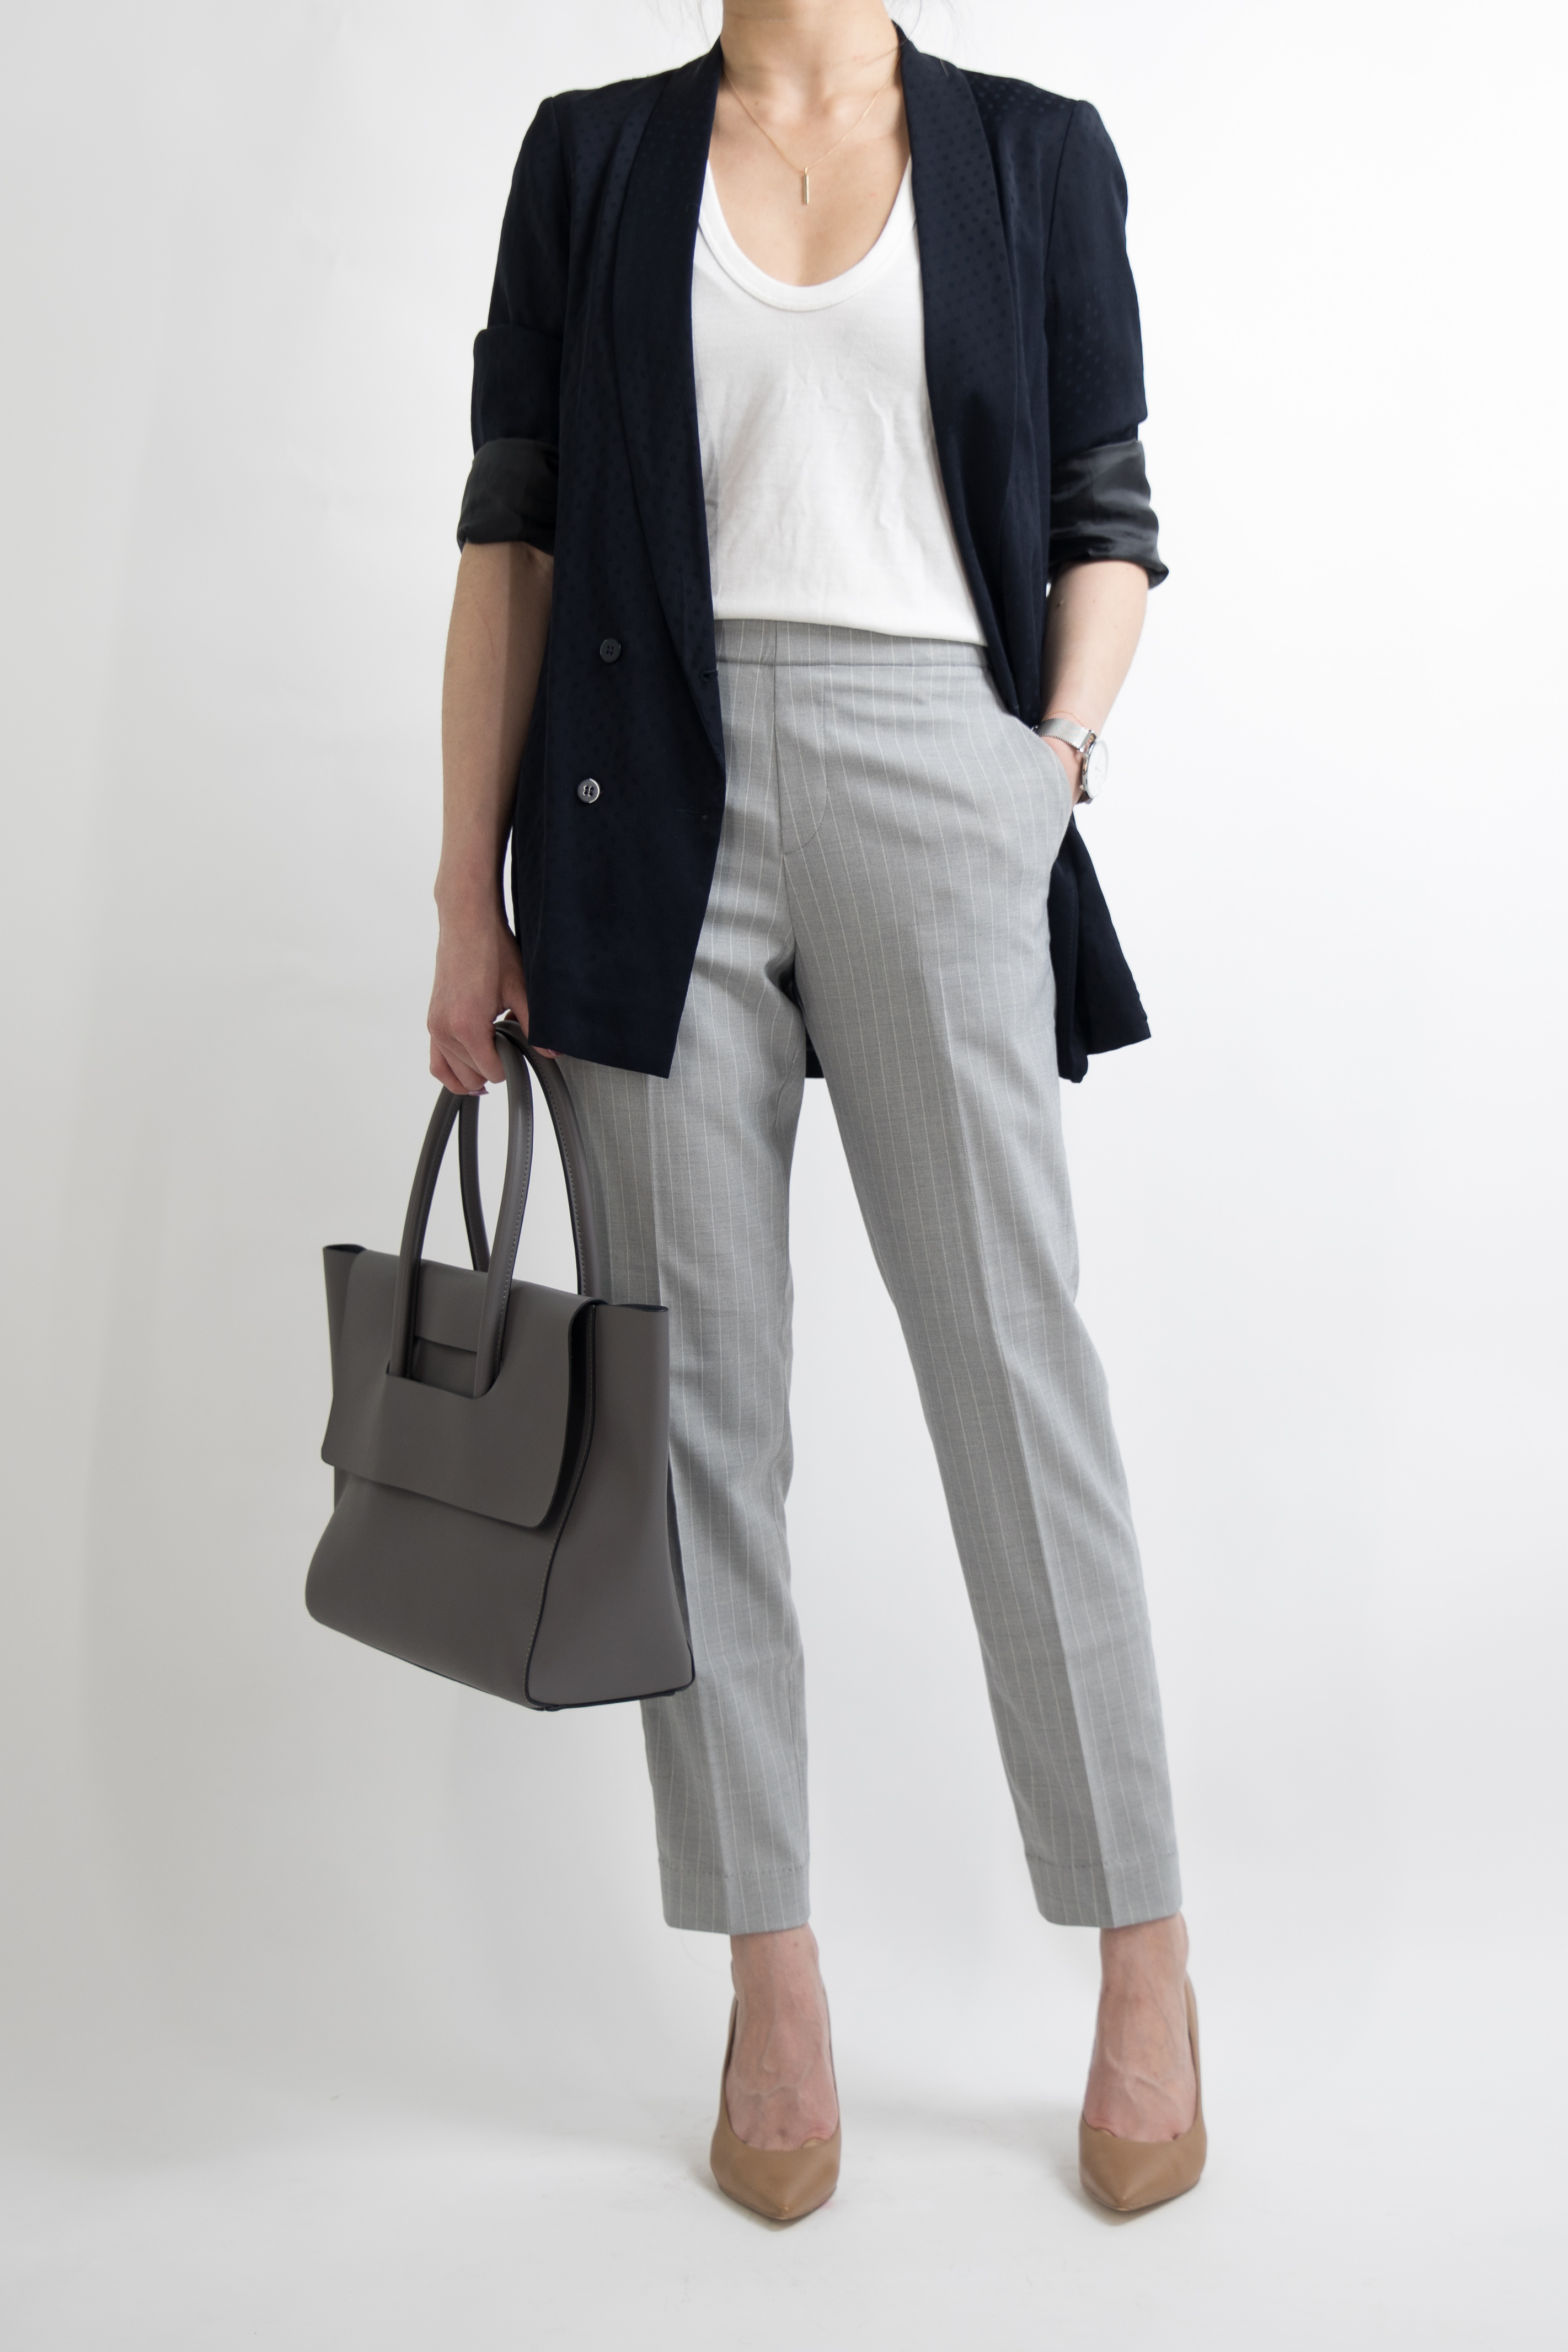 business casual outfits for women photo - 1